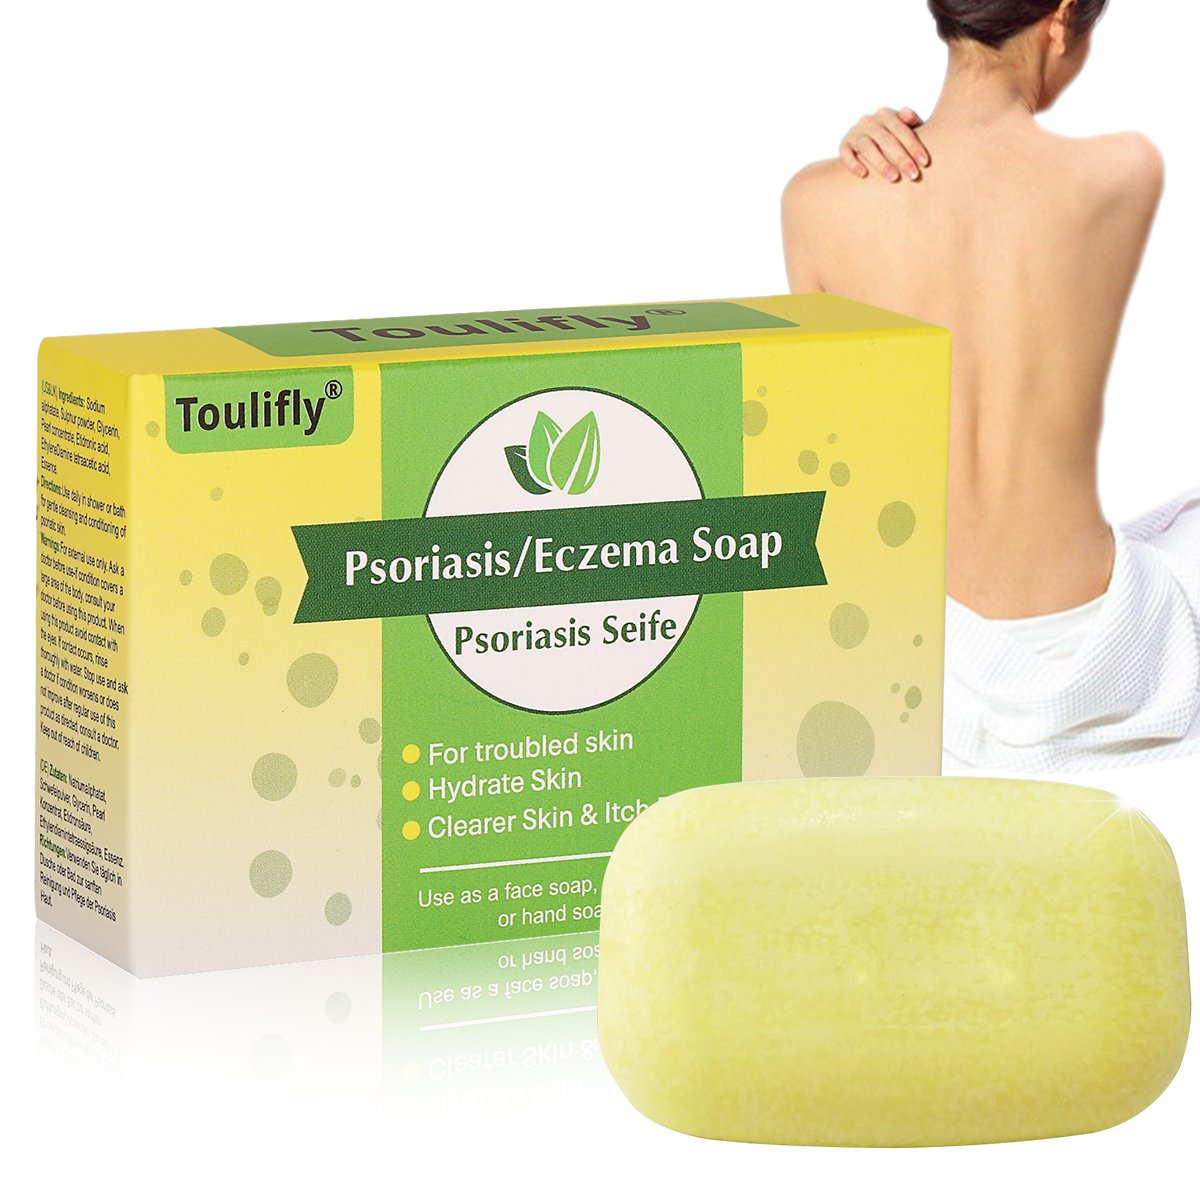 Psoriasis Eczema Soap, for Eczema and Psoriasis Support, Natural Formula Provides Instant and Lasting Relief for Severely Dry, Cracked, Itchy, or Irritated Skin